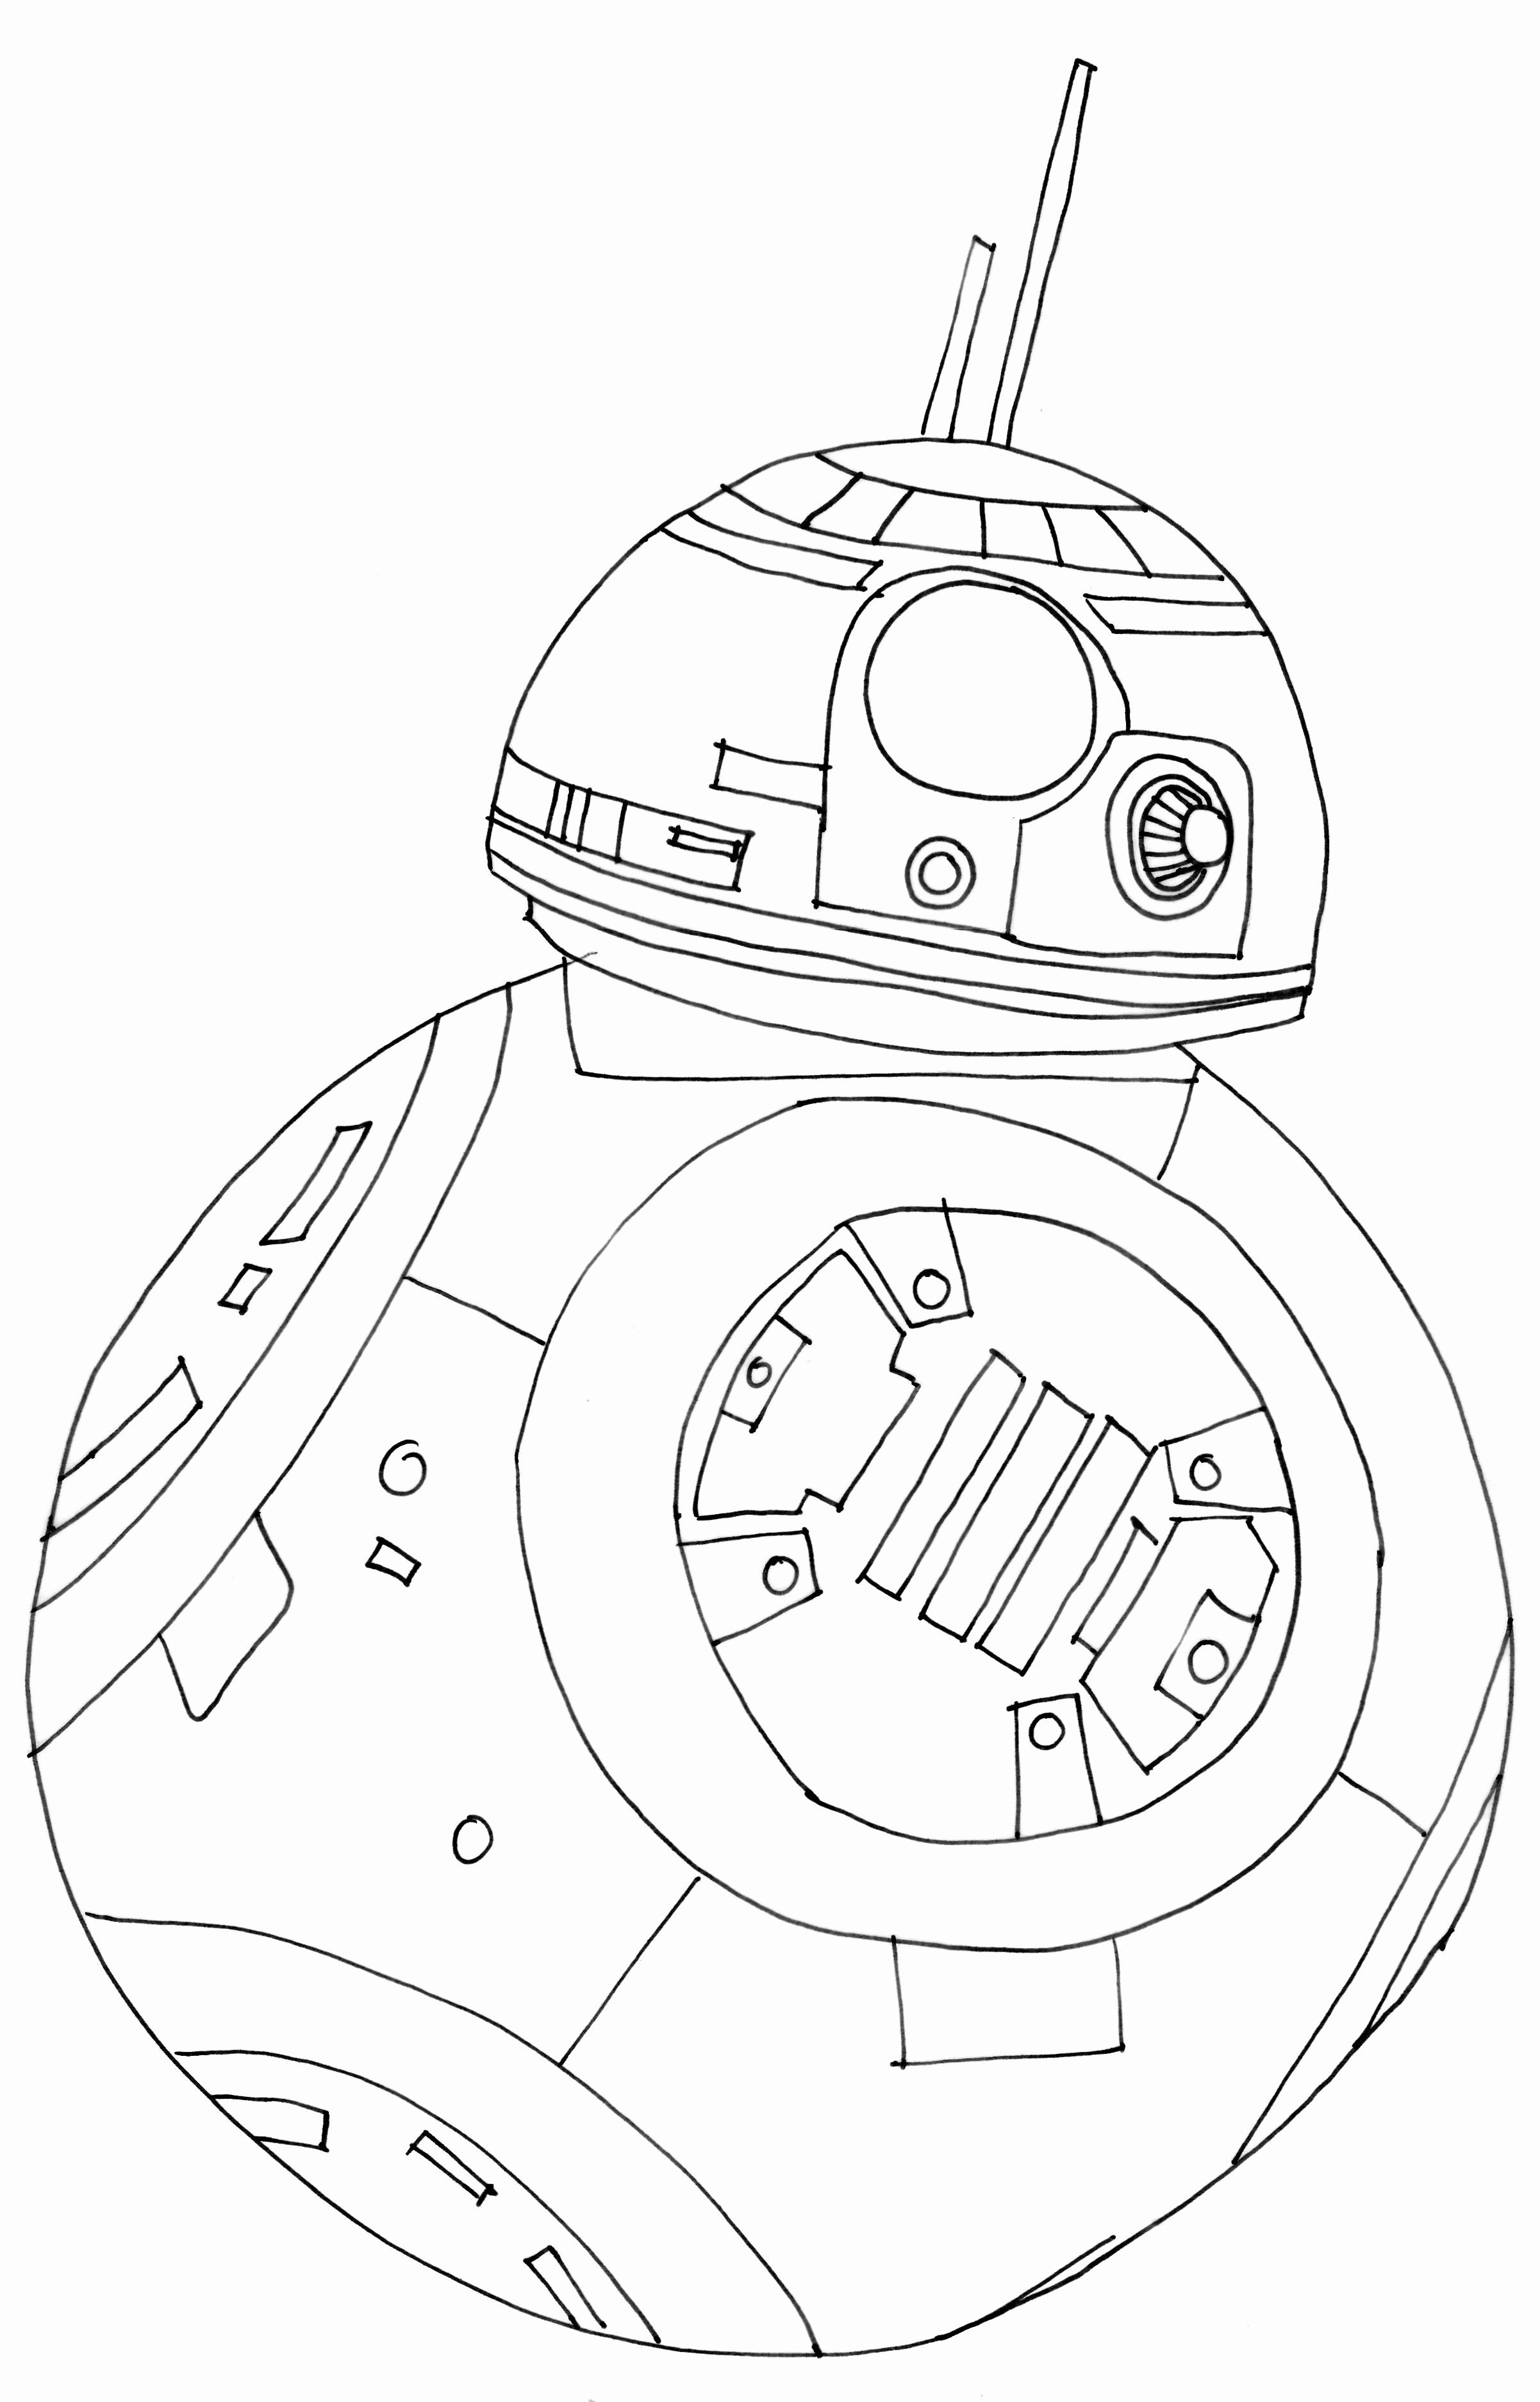 Football Coloring Pages Free Printable Fresh Star Wars Bb8